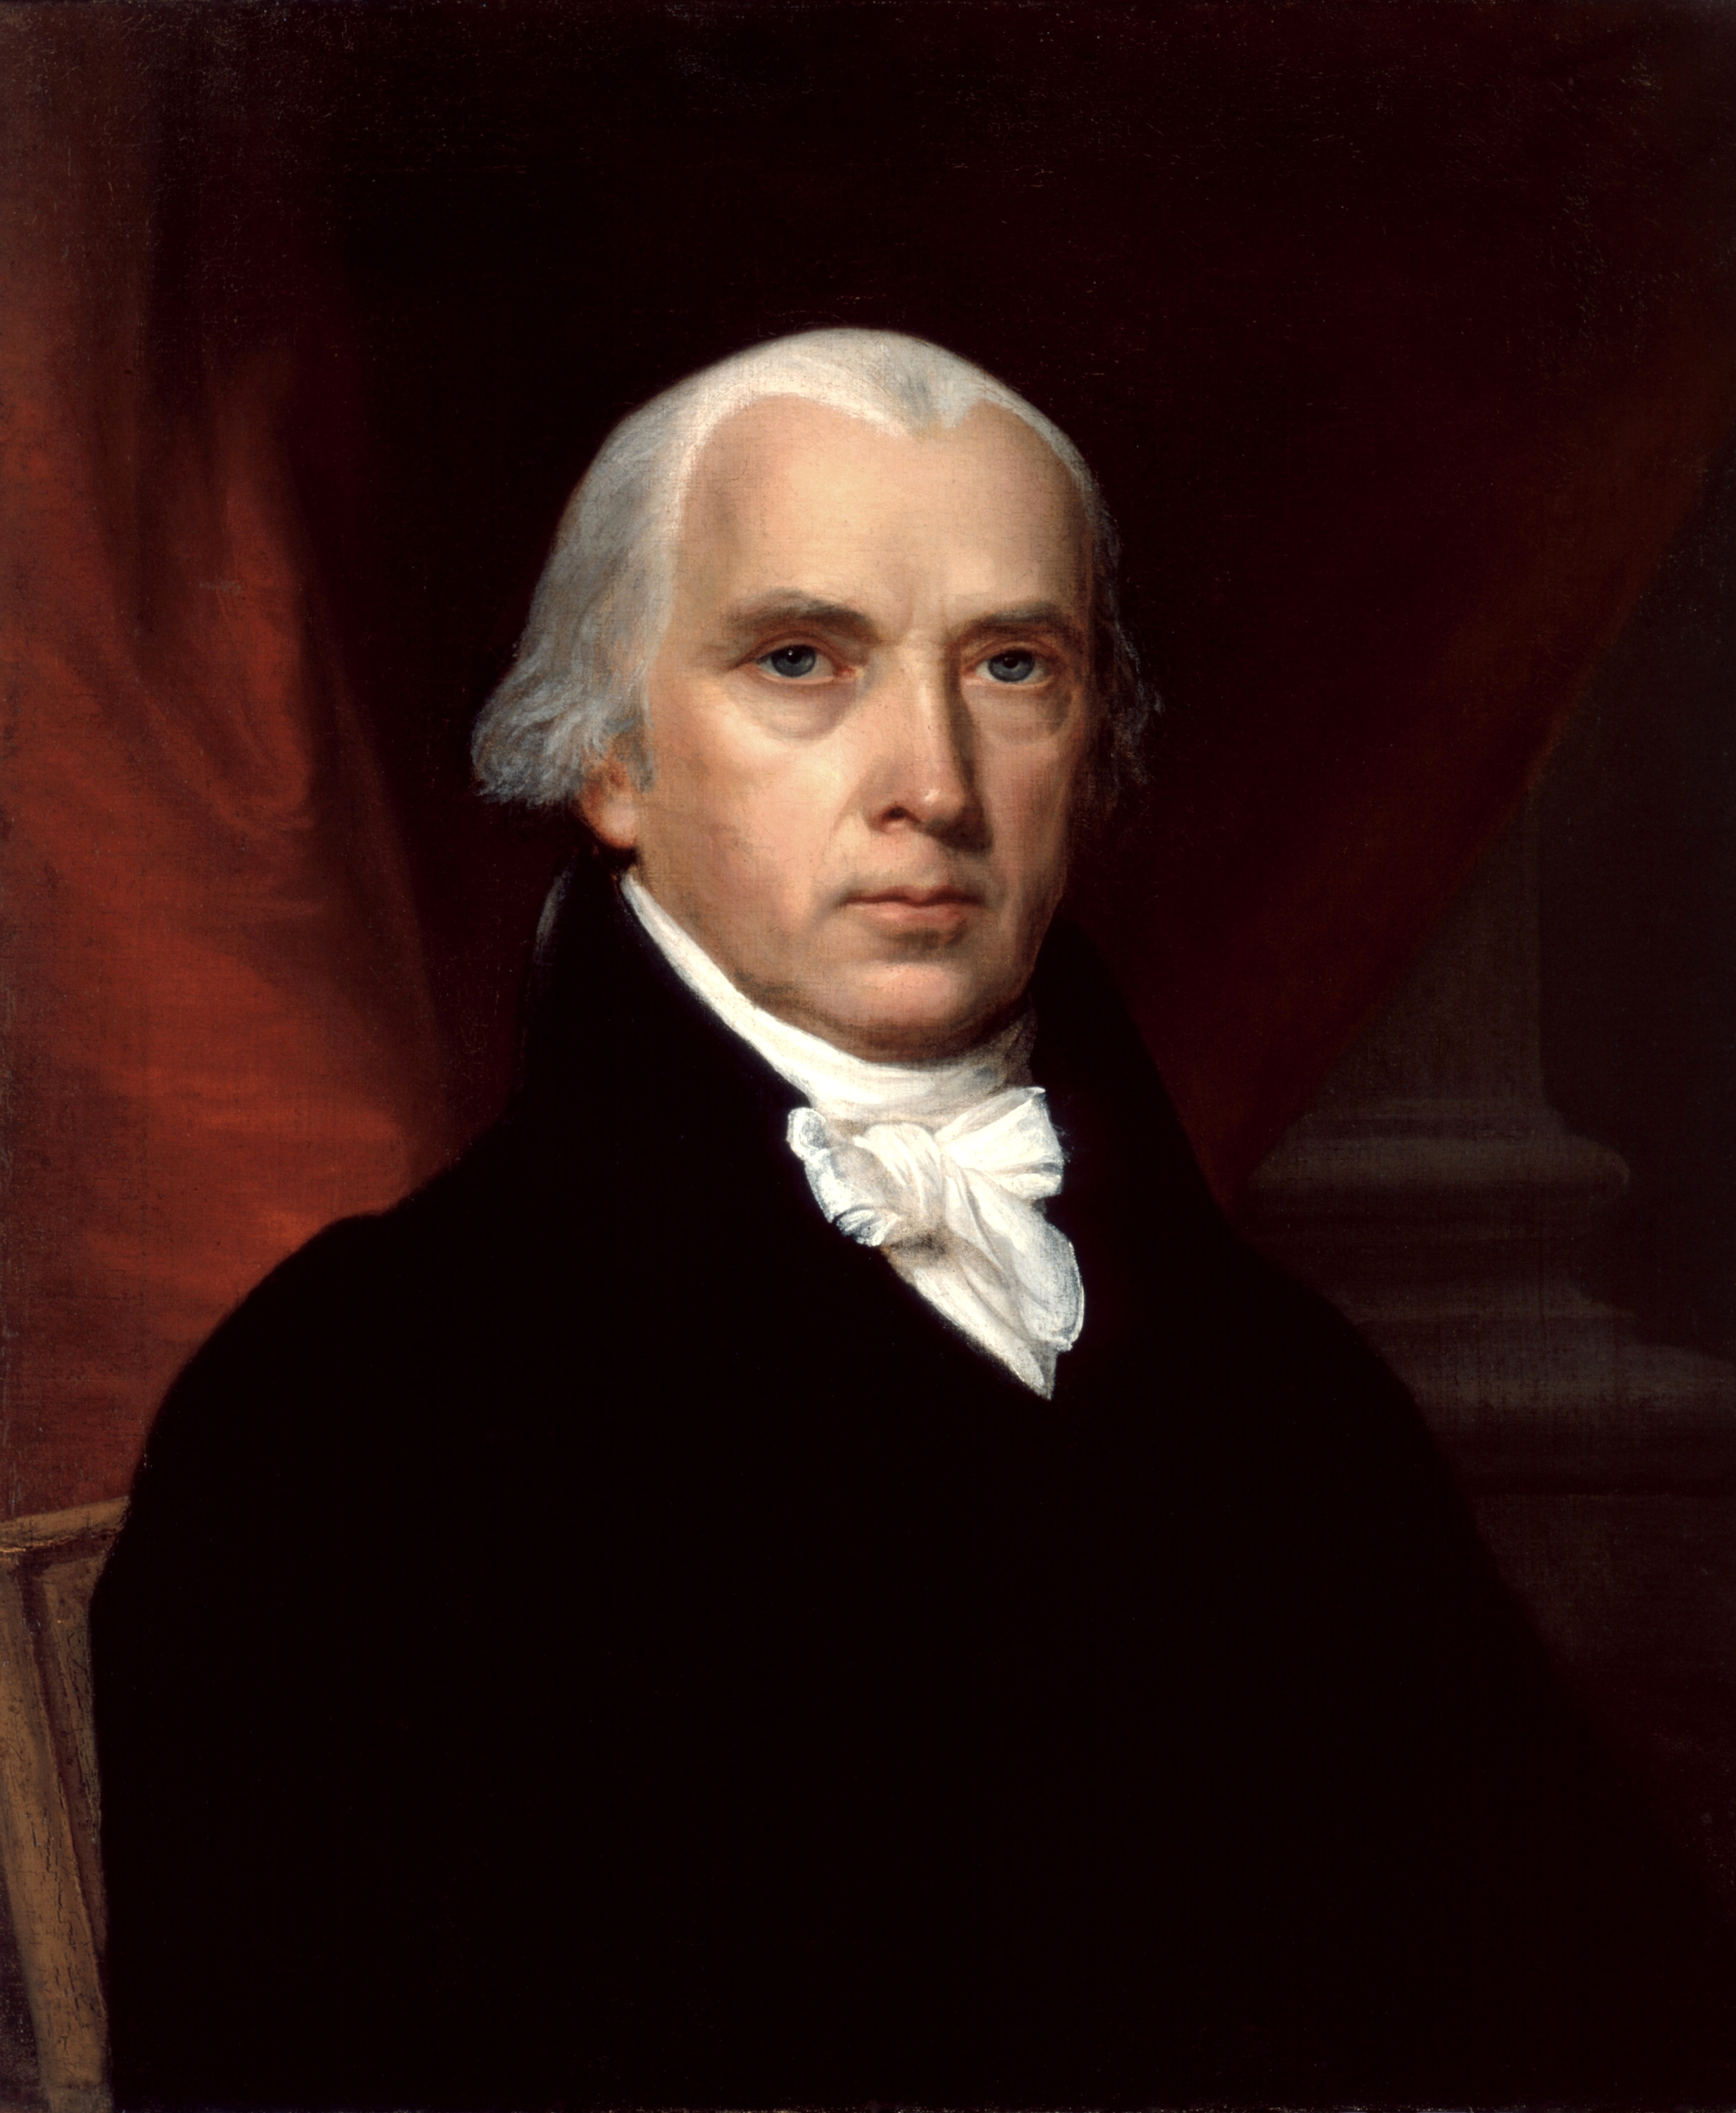 John Vanderlyn: James Madison